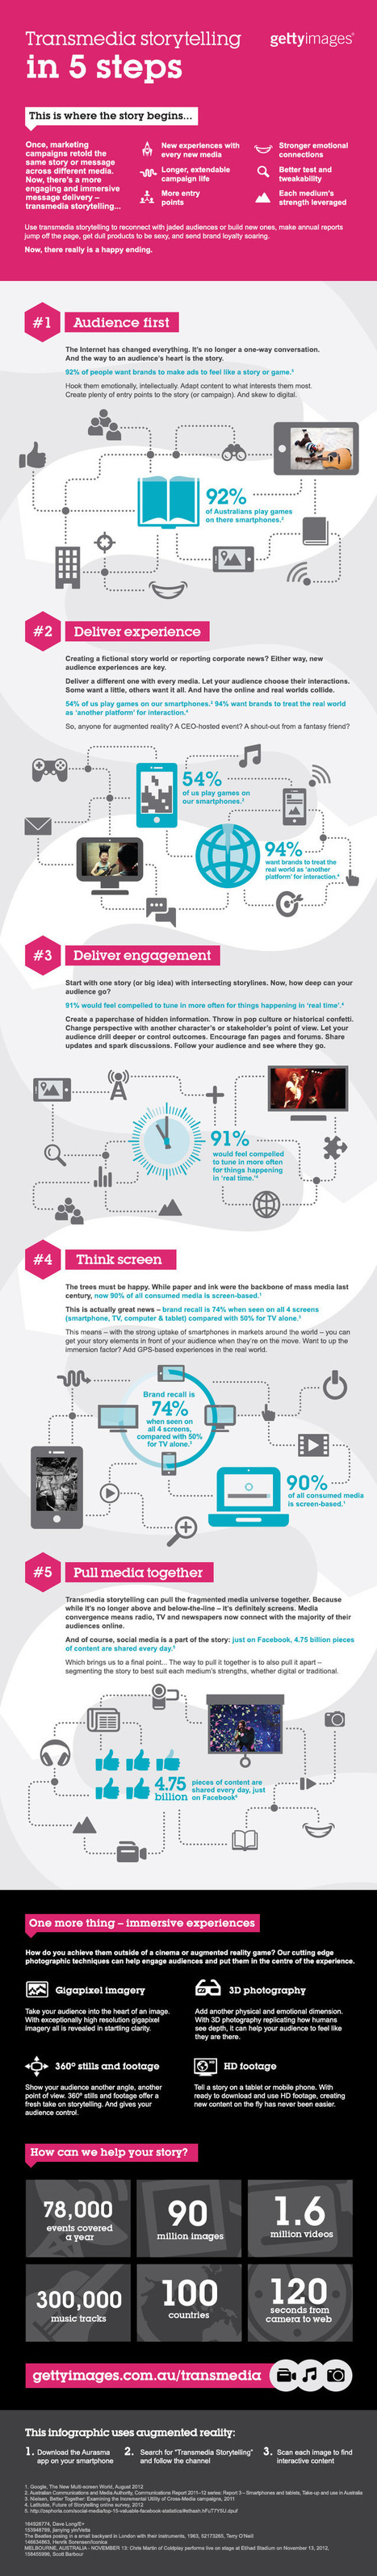 Infographic: The science behind transmedia storytelling and why you need to be across it now | MarketingHits | Scoop.it